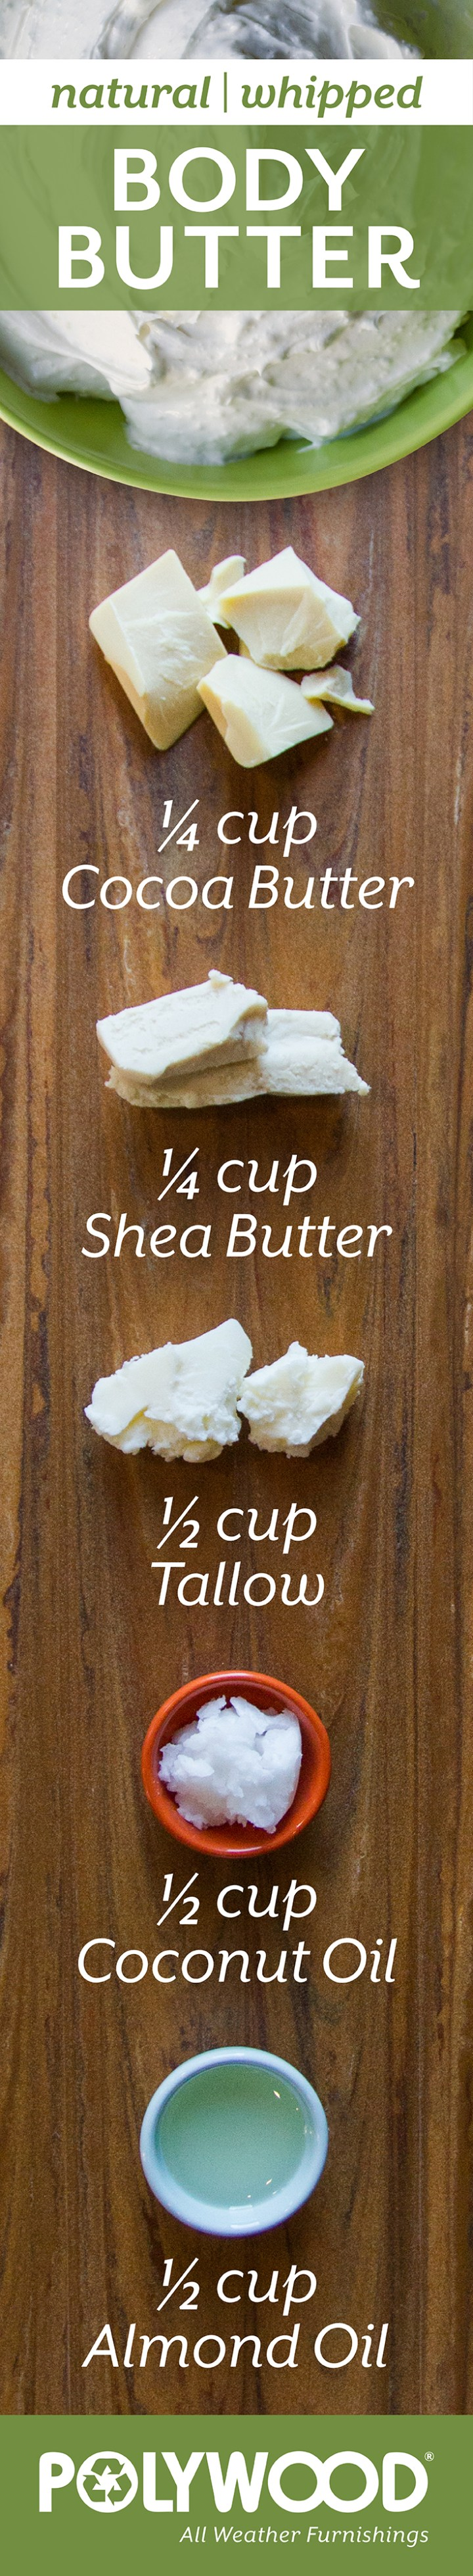 Body-Butter-Pinterest